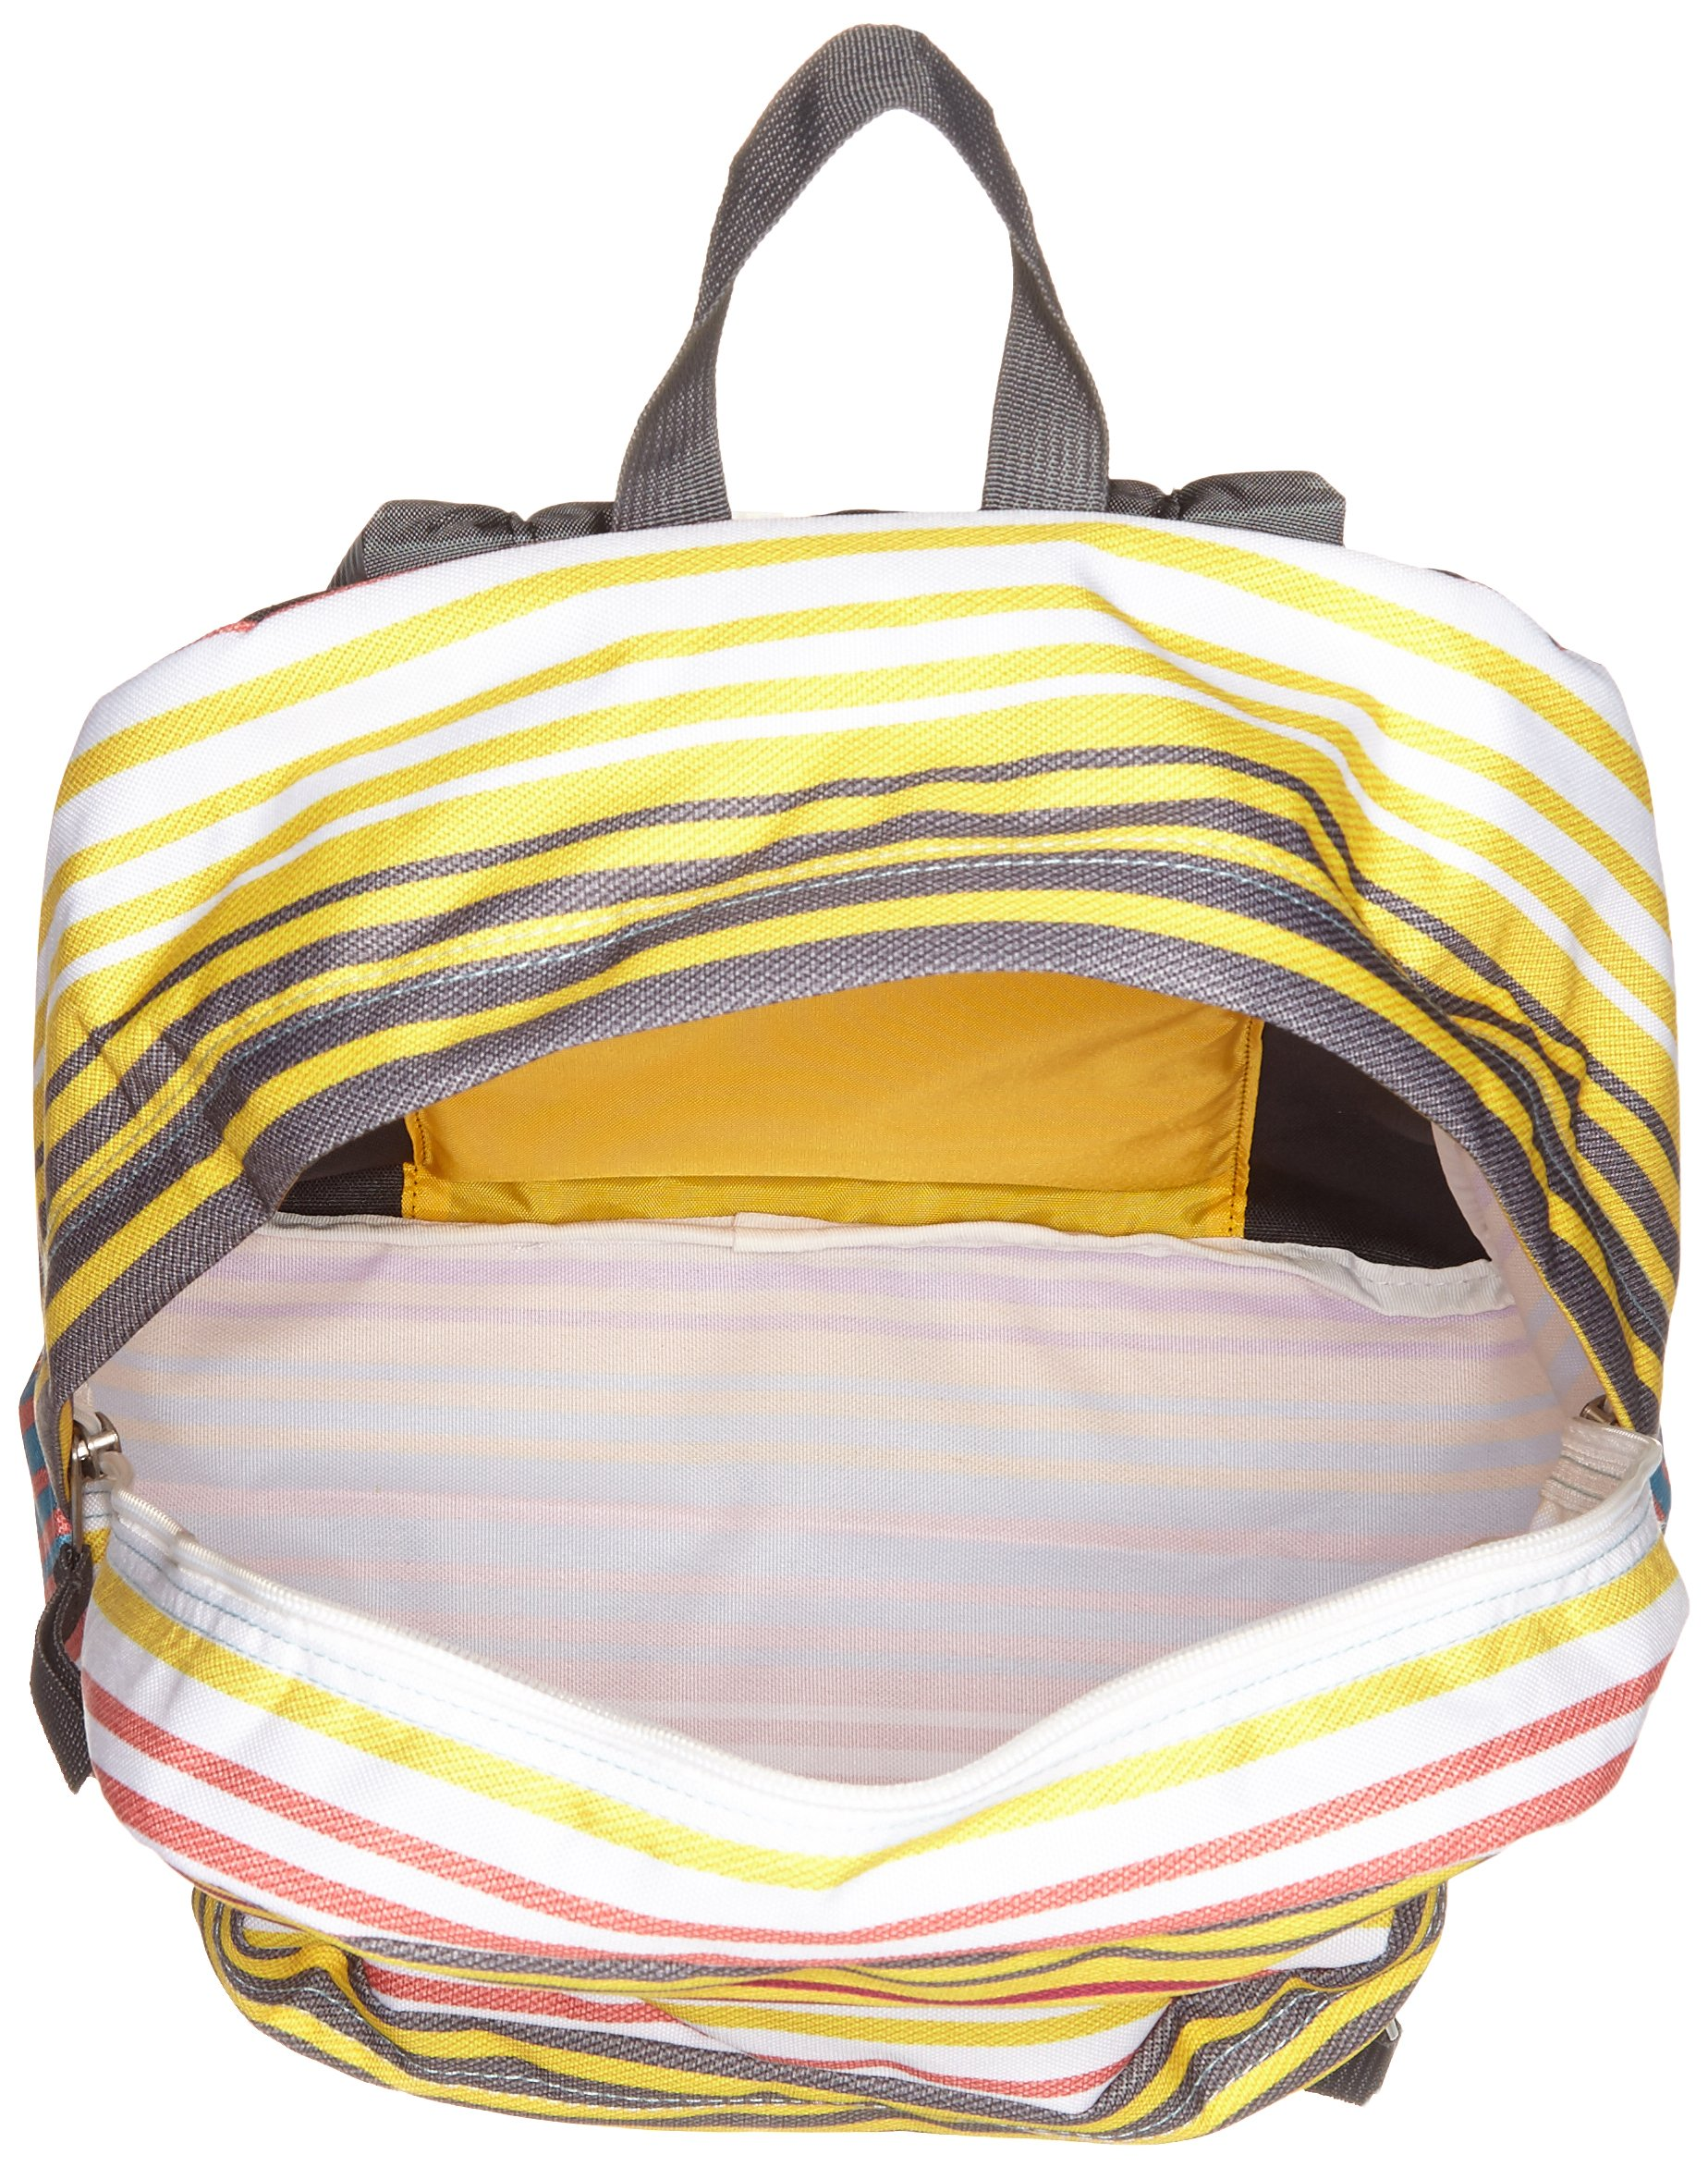 JanSport Classic SuperBreak Backpack, Multi Sunset Stripe by JanSport (Image #3)